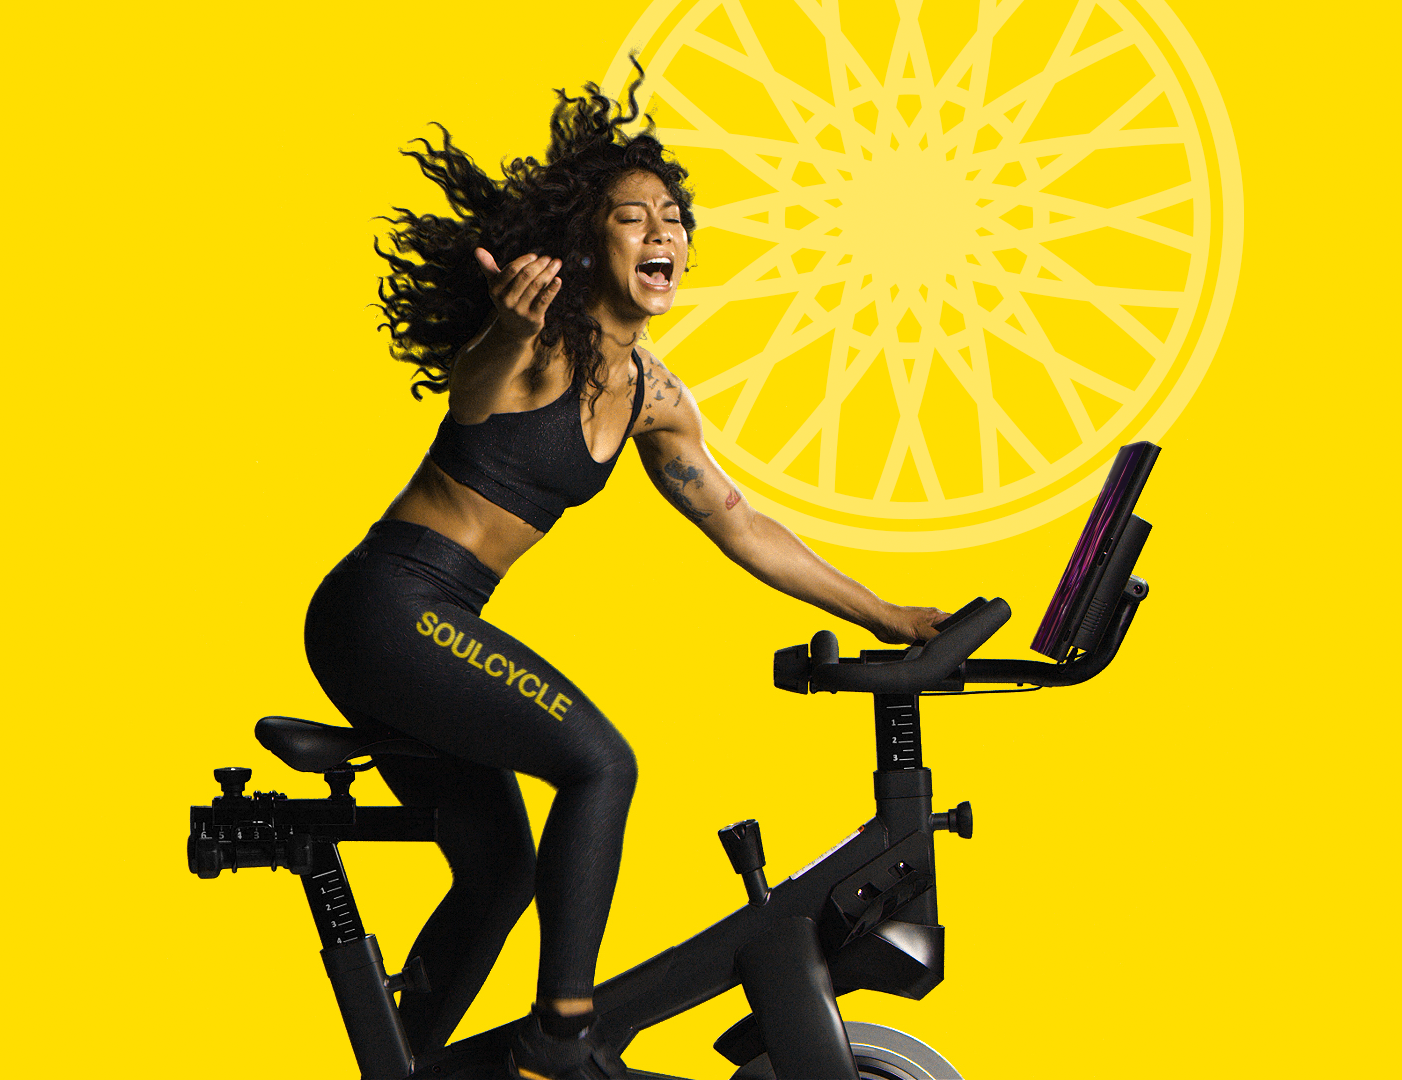 Animating SoulCycle Rider